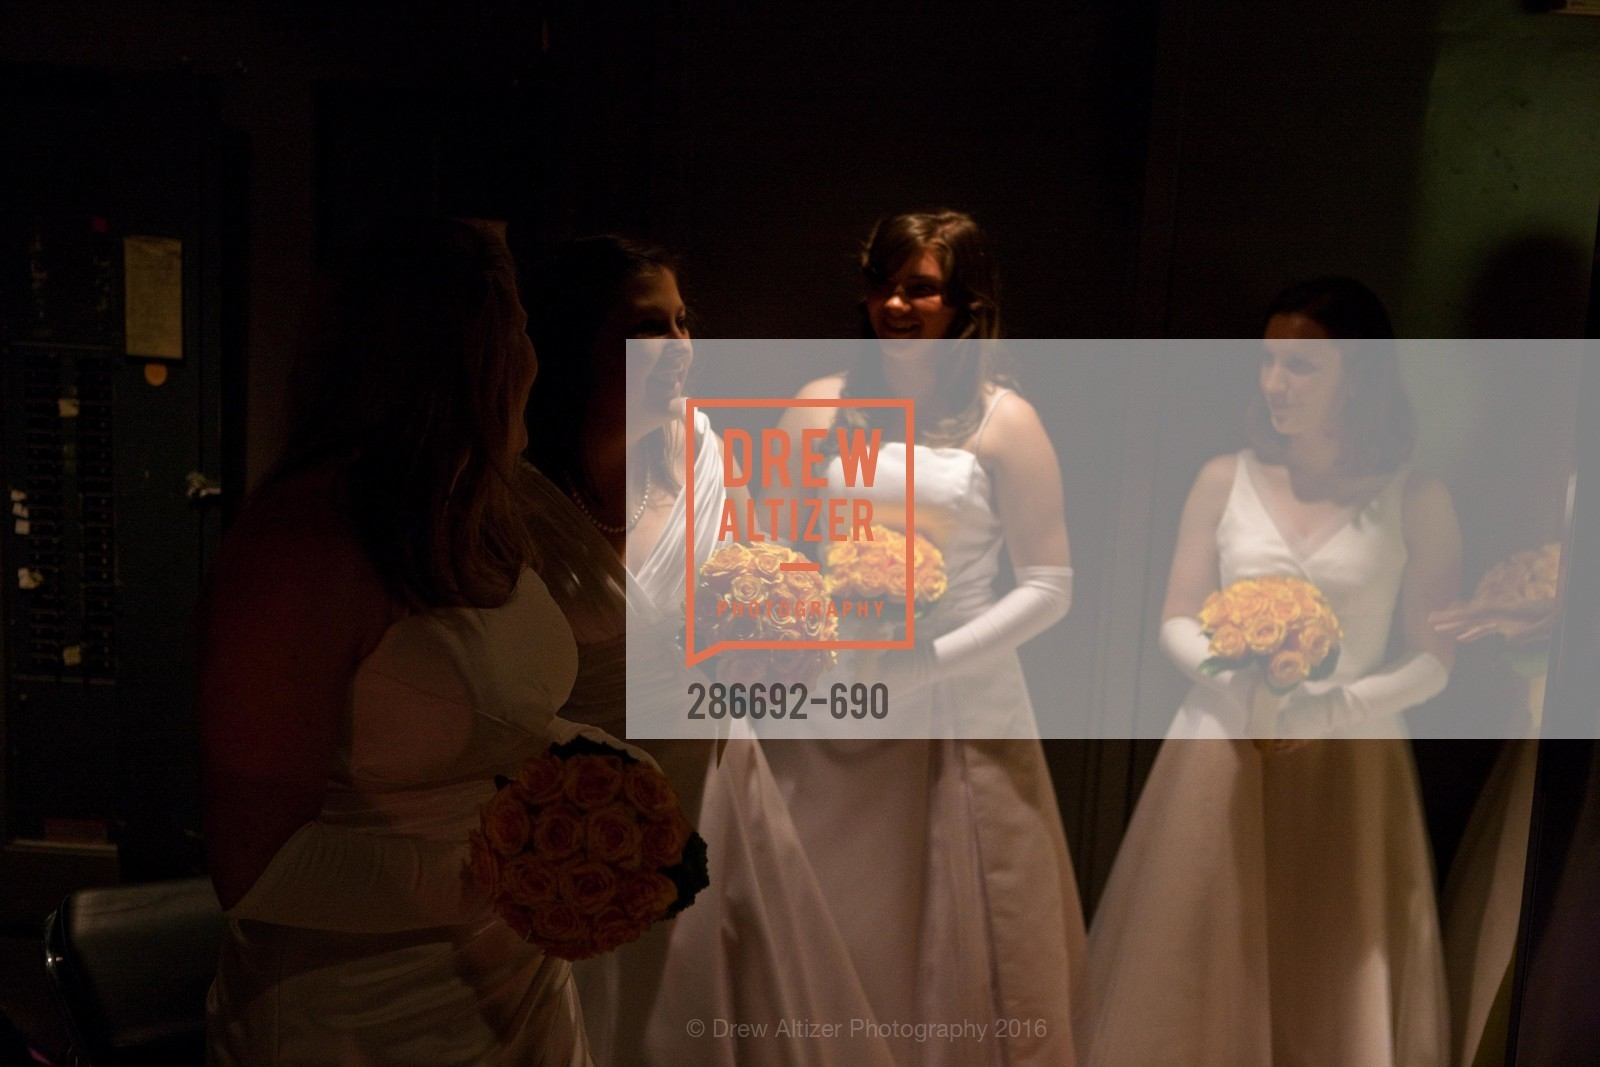 Kelly Gillfillan, Maison Haines, Victoria Hetz, Eloise Horn, 2009 Debutante Ball, Unknown, July 4th, 2008,Drew Altizer, Drew Altizer Photography, full-service agency, private events, San Francisco photographer, photographer california